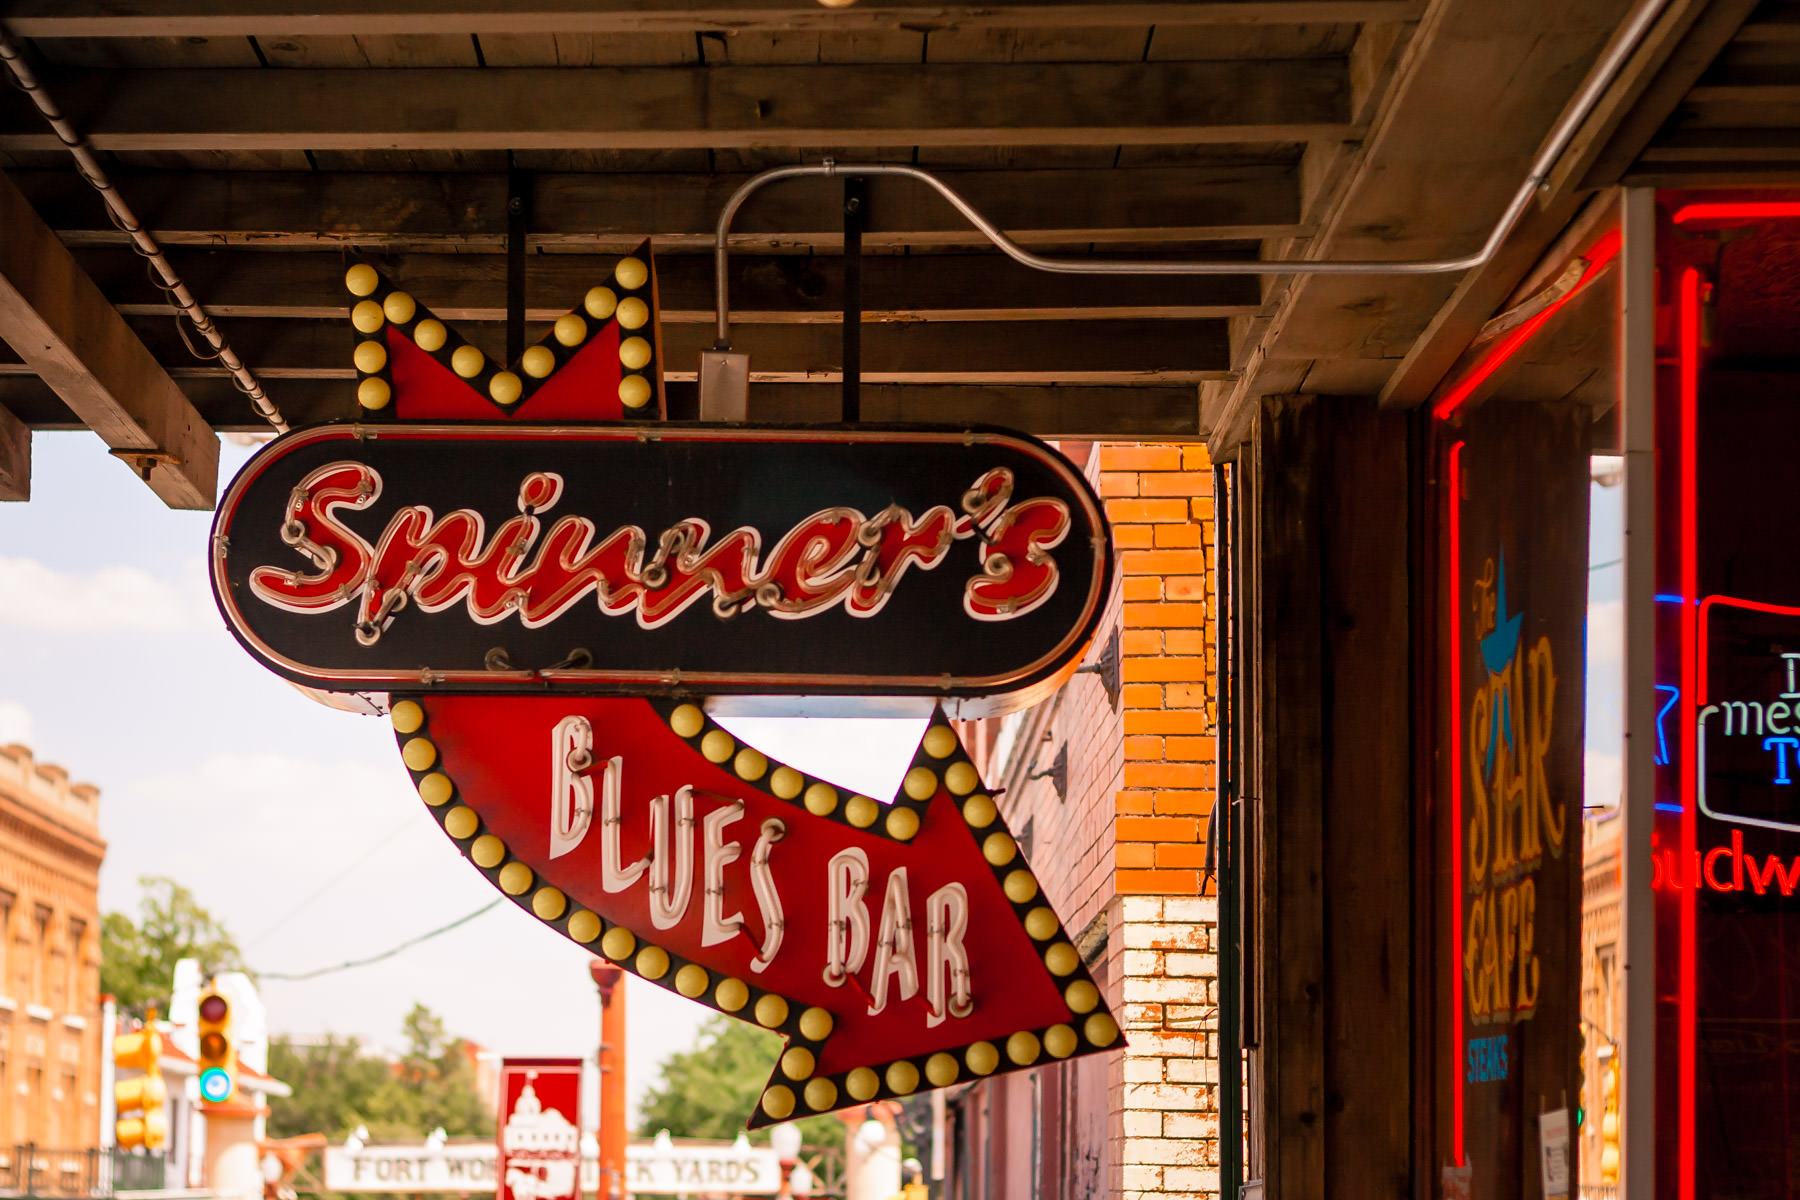 The neon sign of Spinner's Blues Bar in the historic Fort Worth Stockyards, Texas.